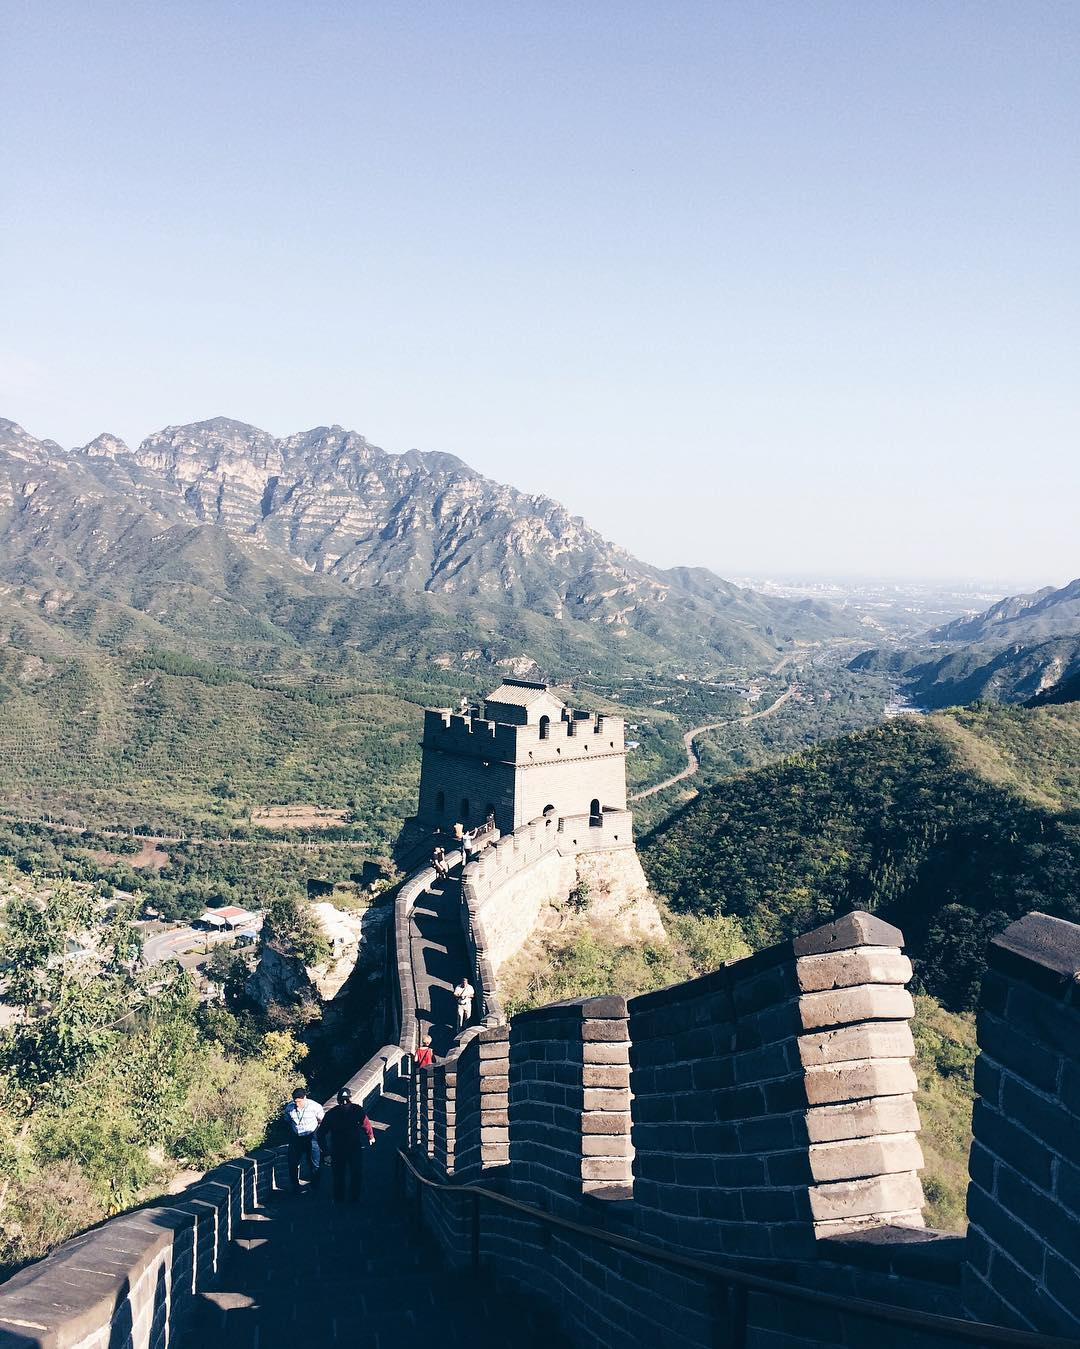 #ThrowbackThursday: The Great Wall of China